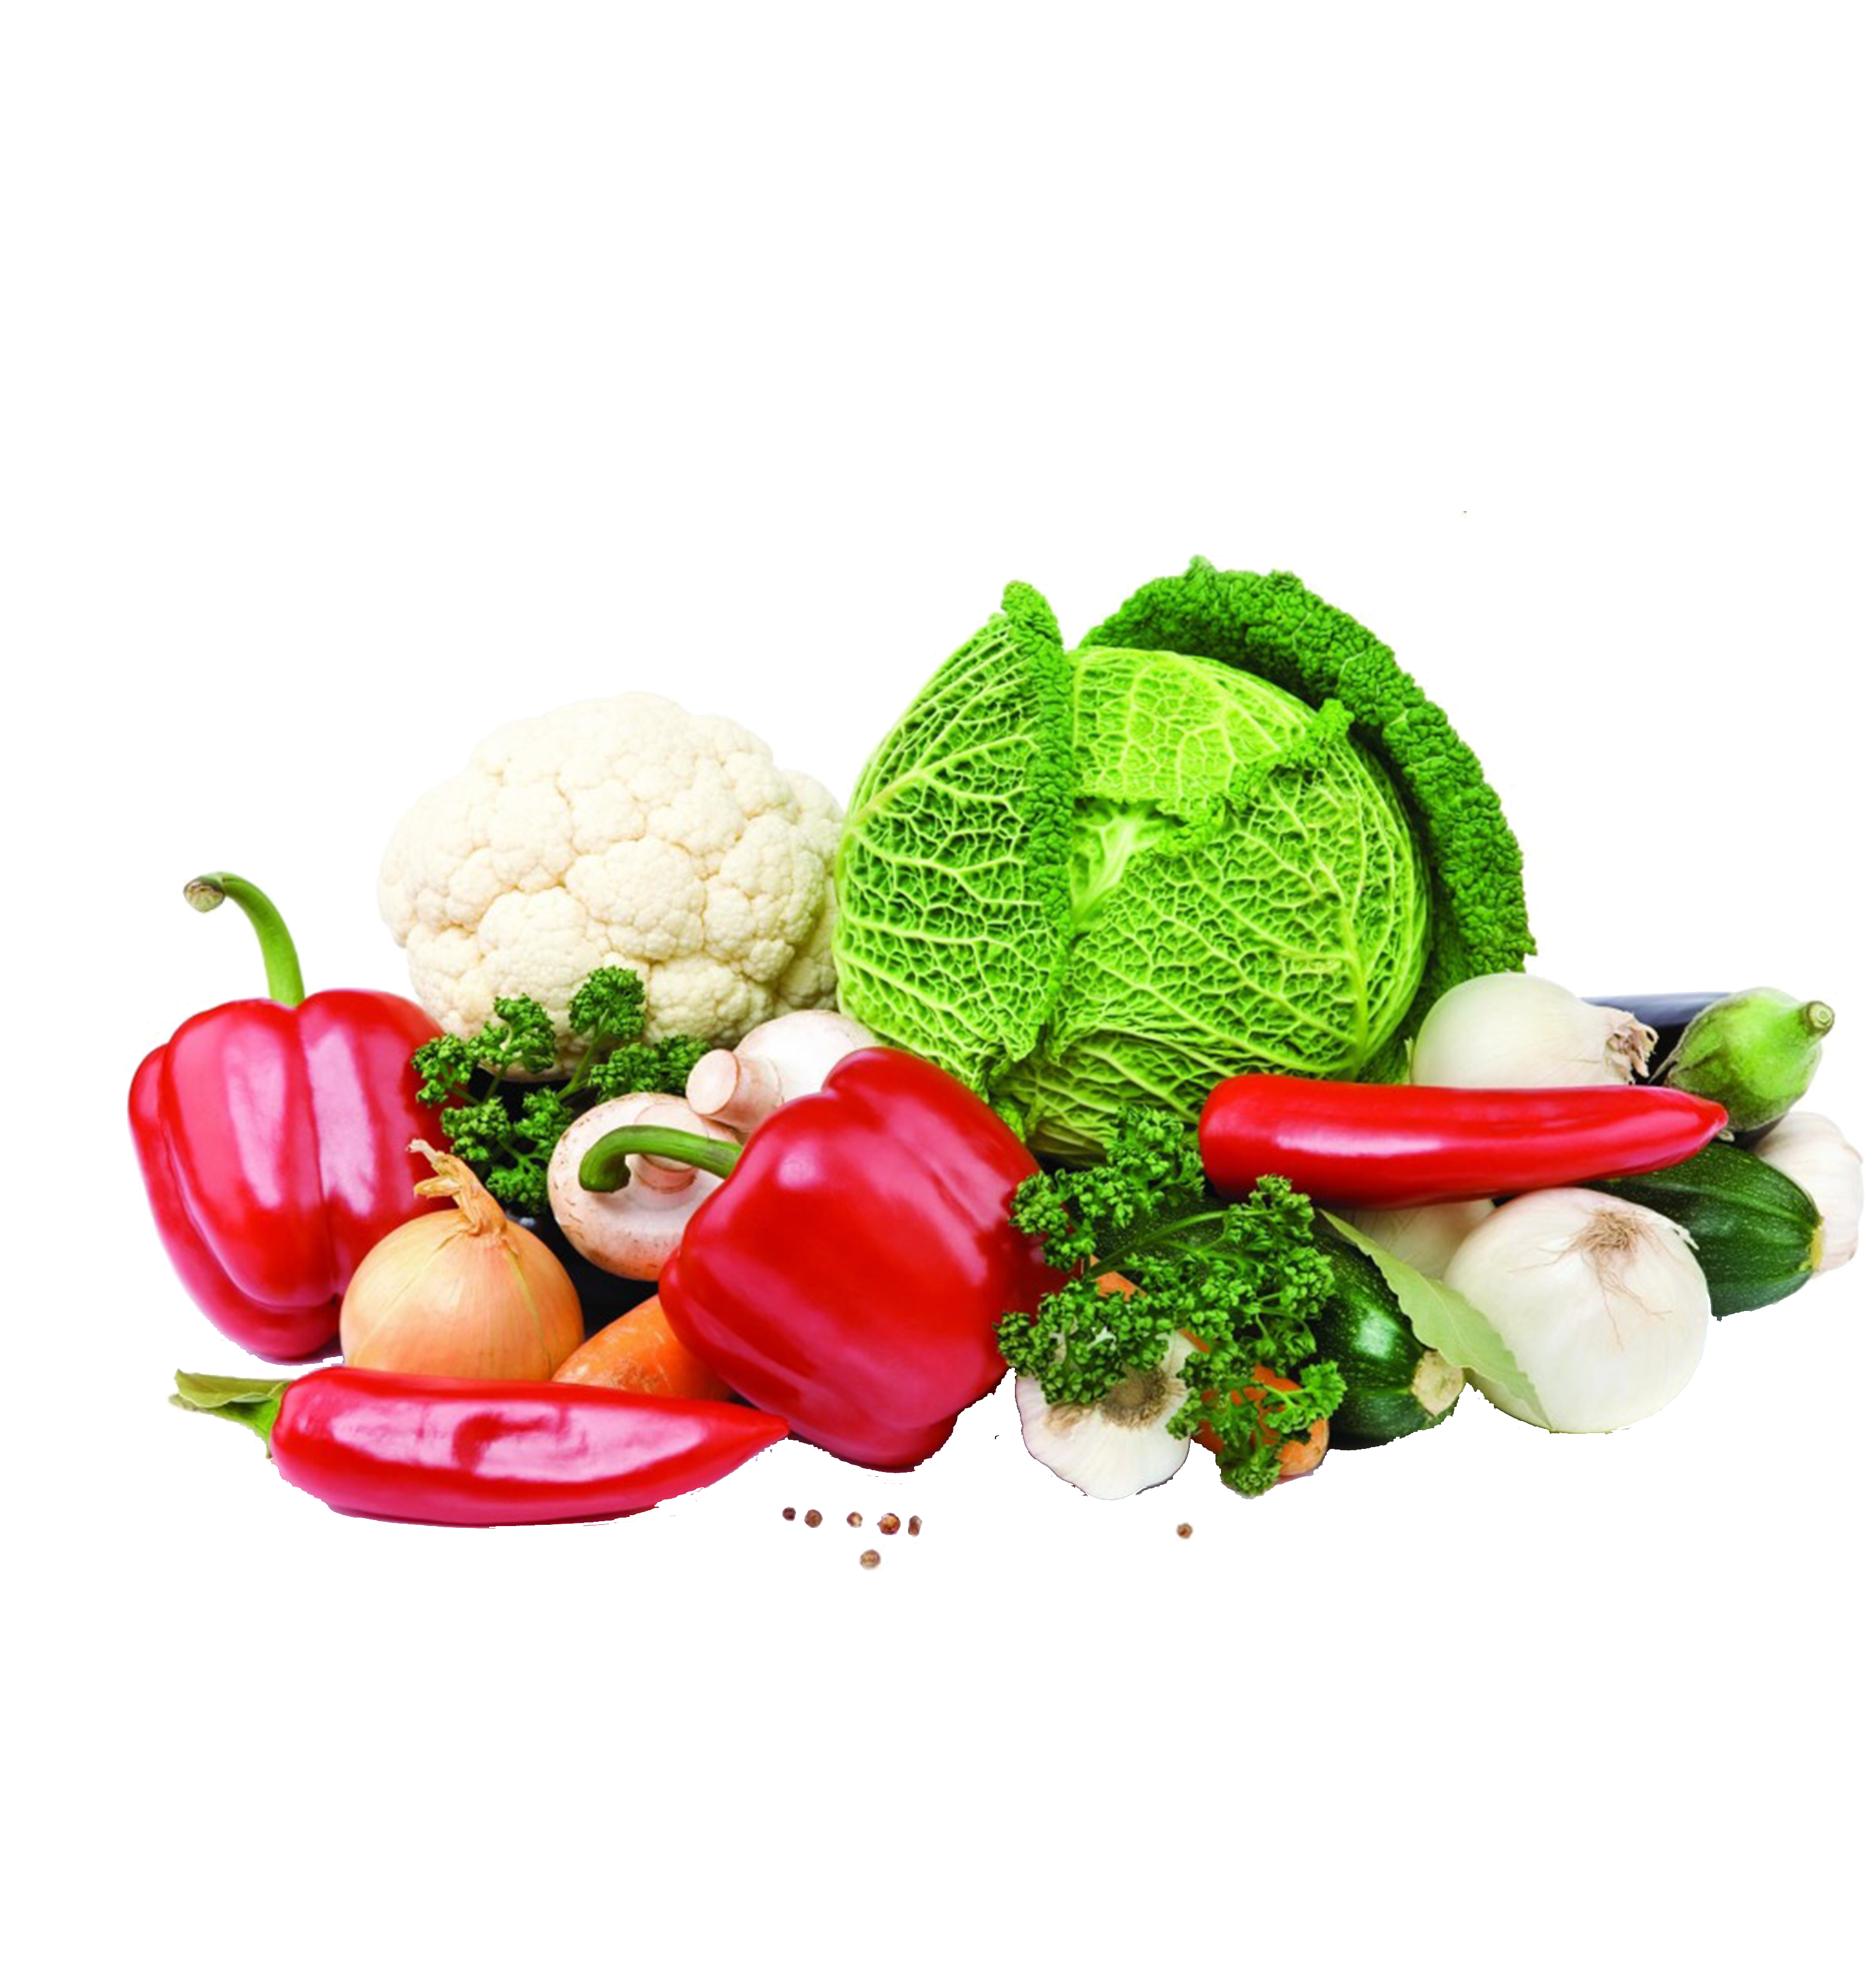 Fruits and vegetables png. Organic food indian cuisine